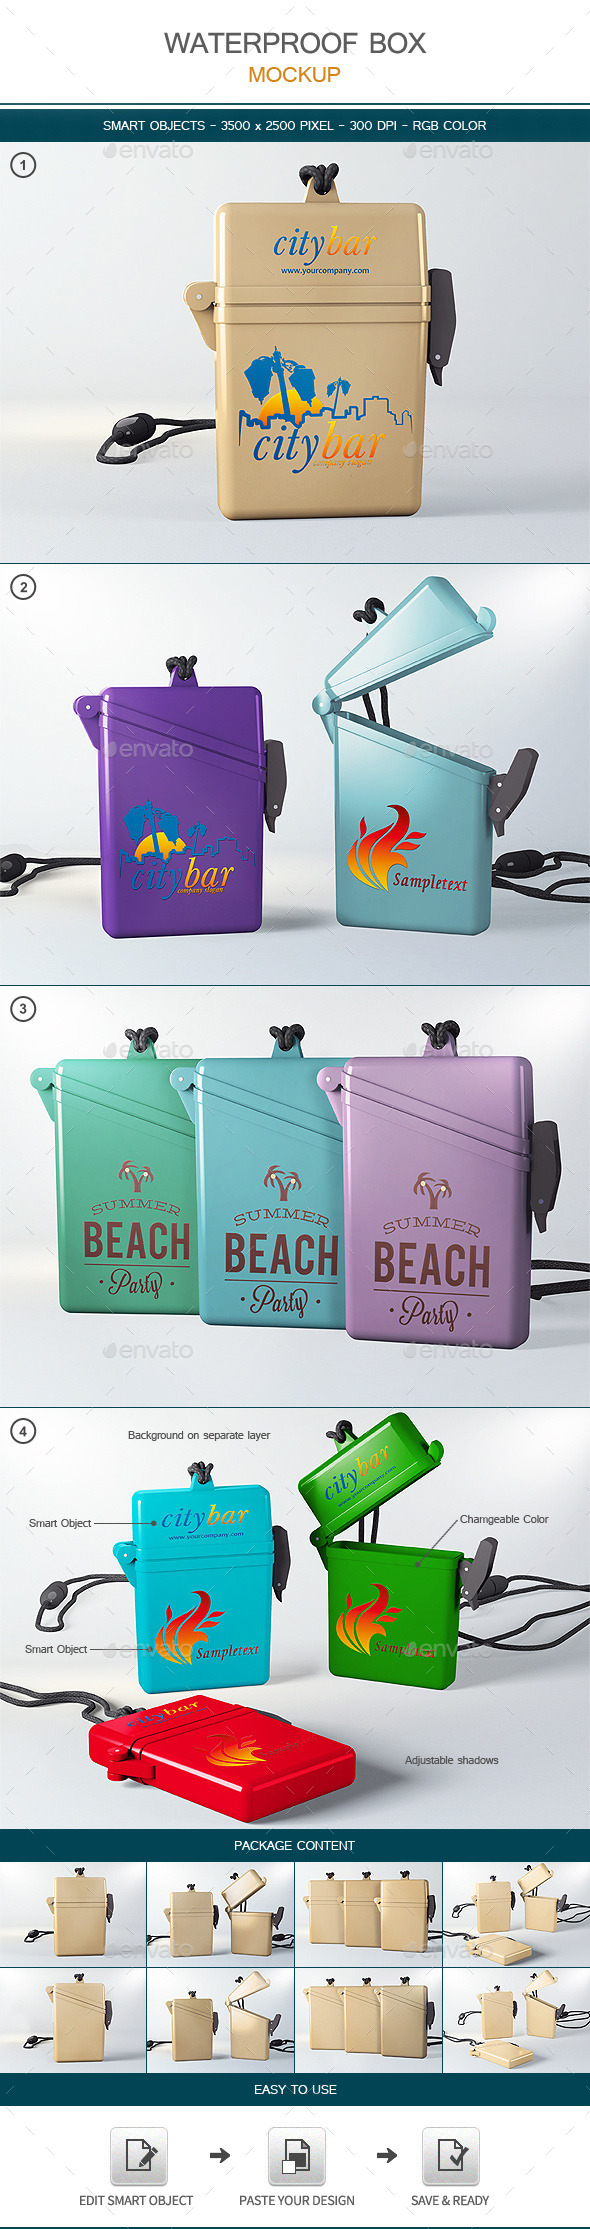 GraphicRiver Waterproof Box Mock-up 10190786